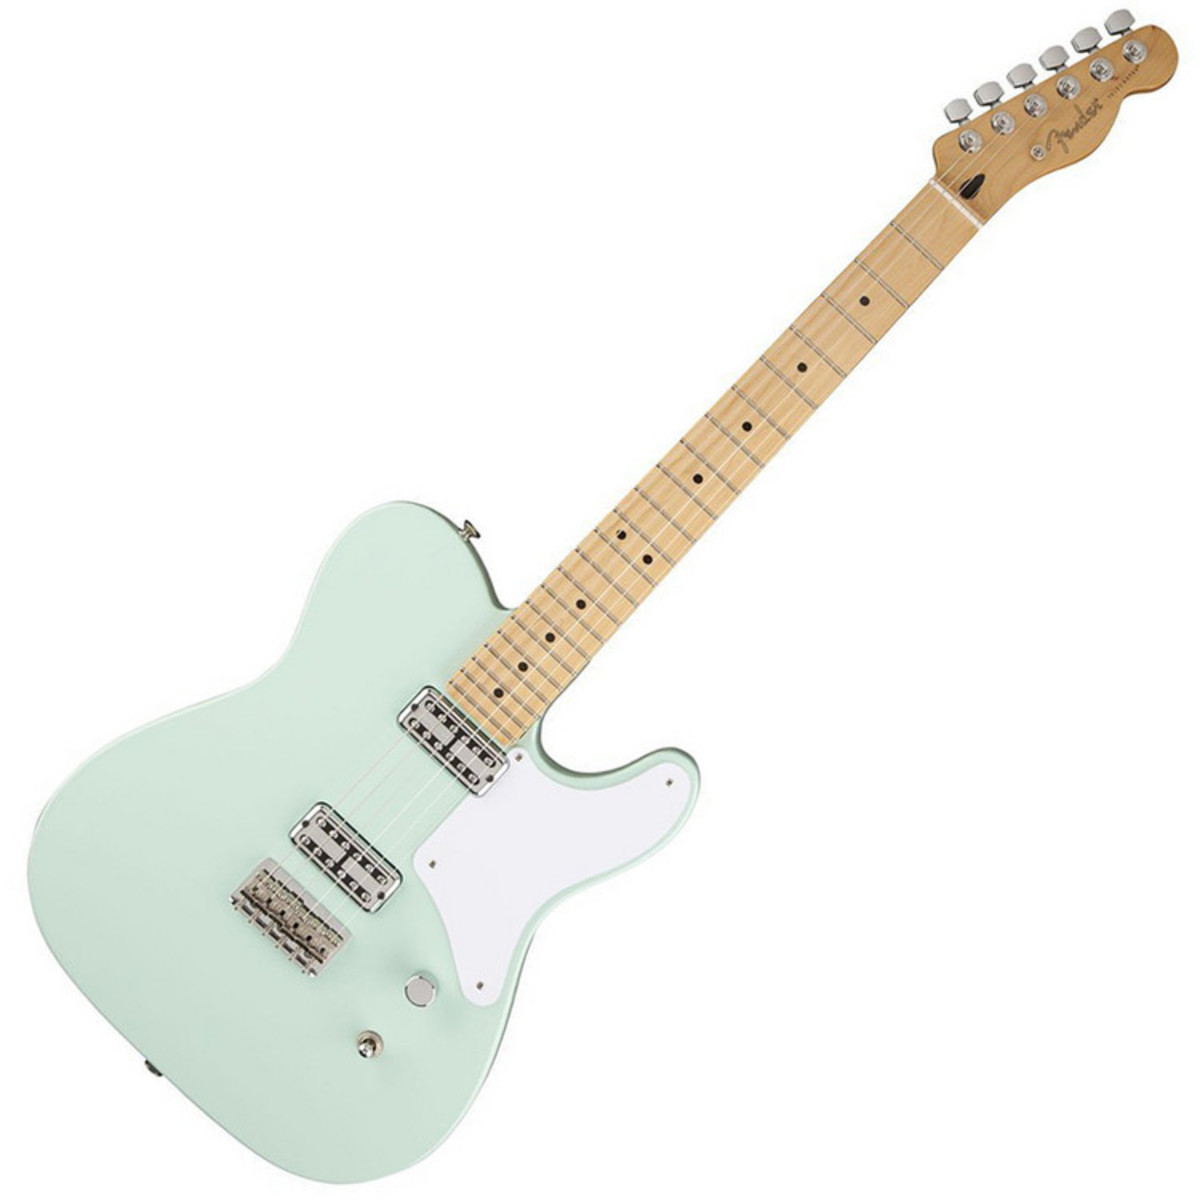 fender classic player cabronita telecaster guitar surf green at gear4music. Black Bedroom Furniture Sets. Home Design Ideas